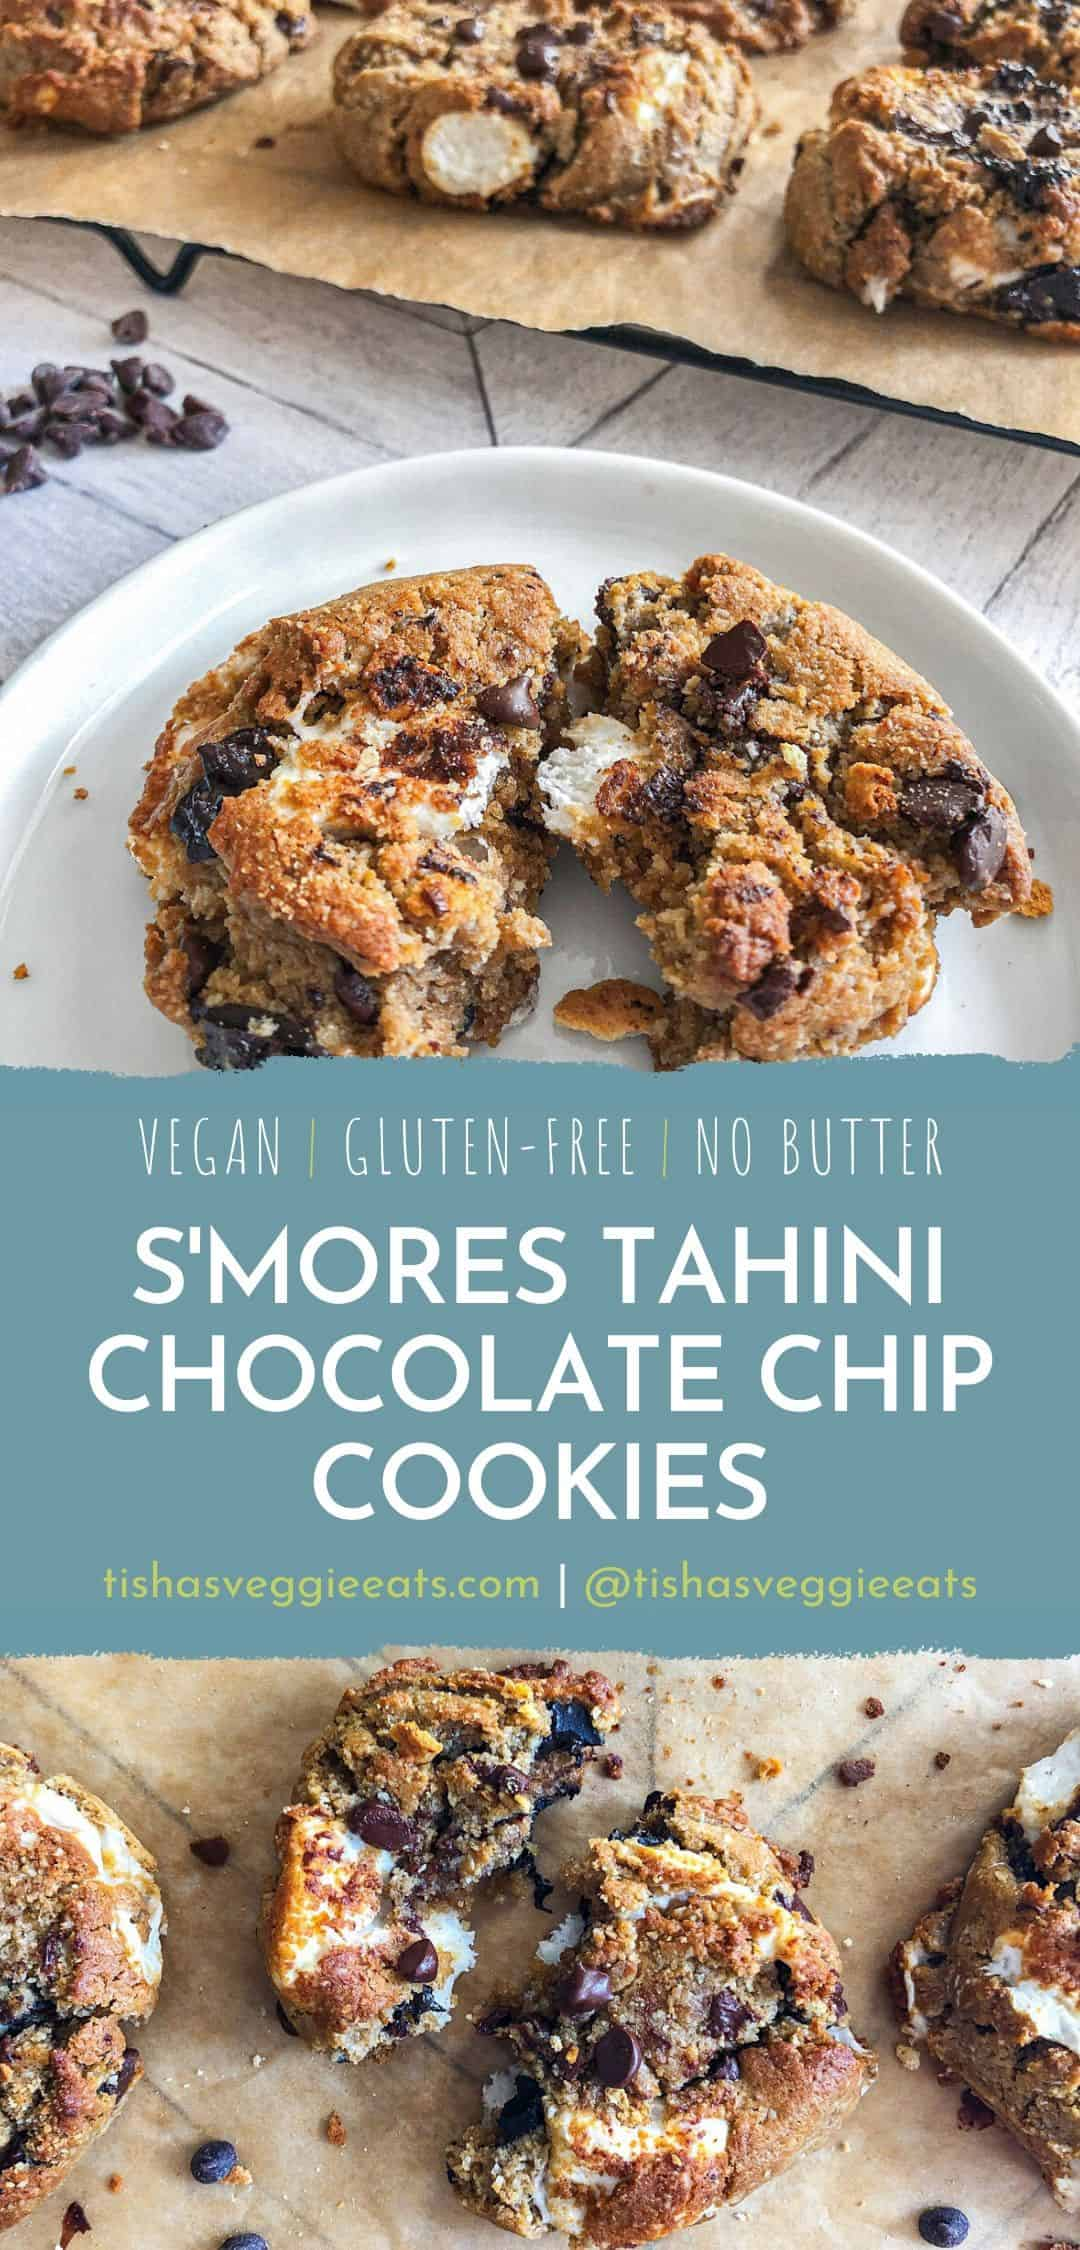 cut shot of smores tahini chocolate chip cookie with cookies in the background on parchment lined cooling rack